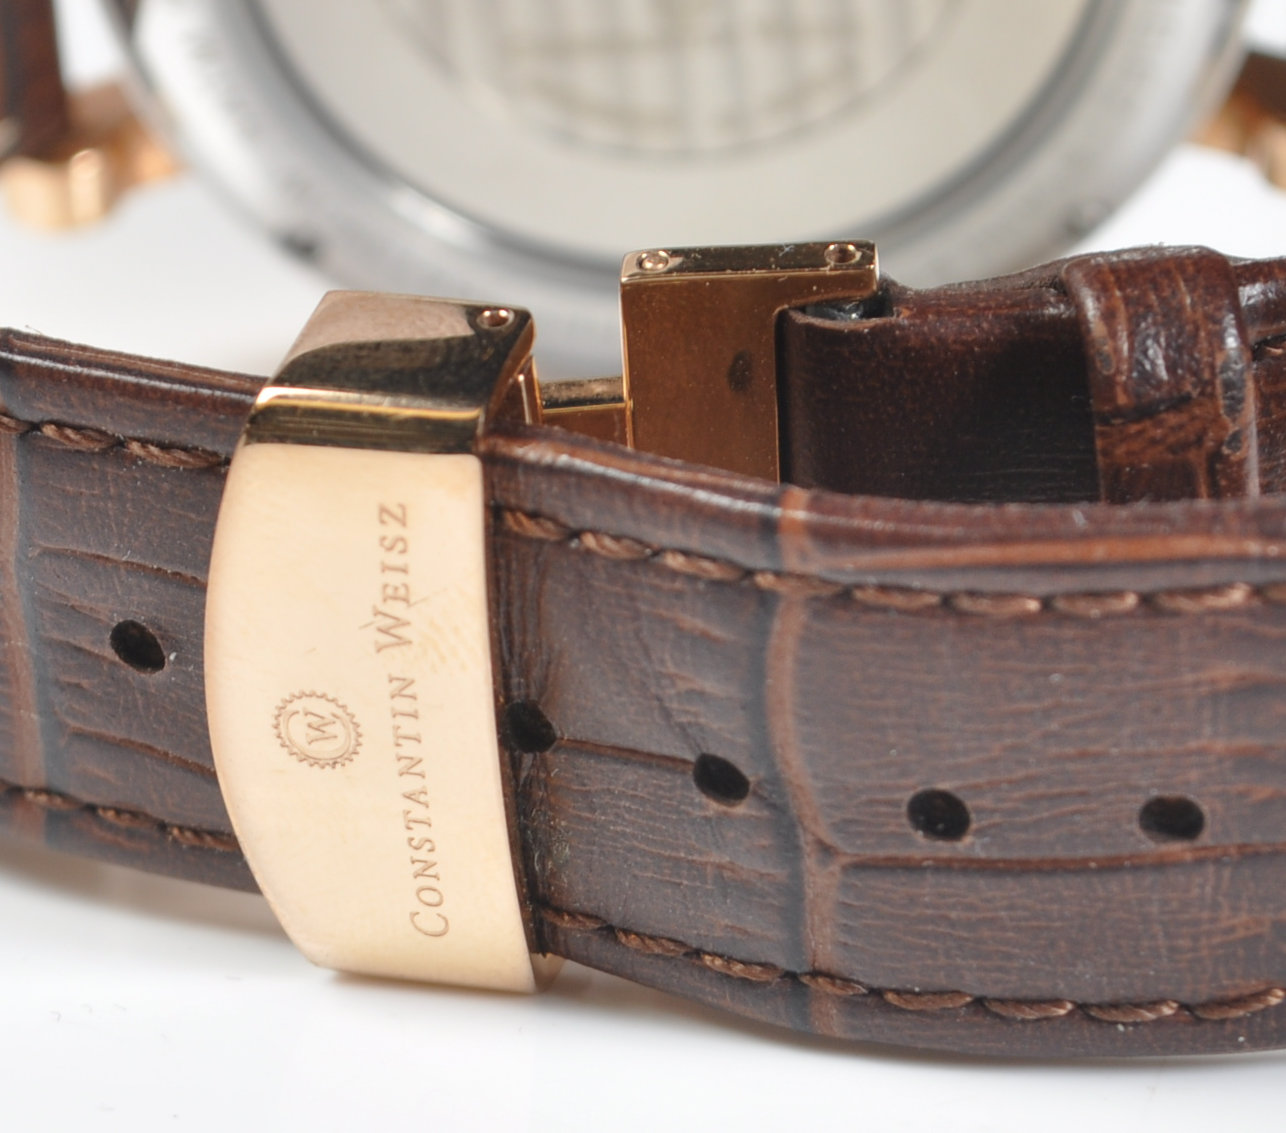 CONSTANTIN WEISZ DOUBLE HEART AUTOMATIC WRISTWATCH - Image 6 of 7